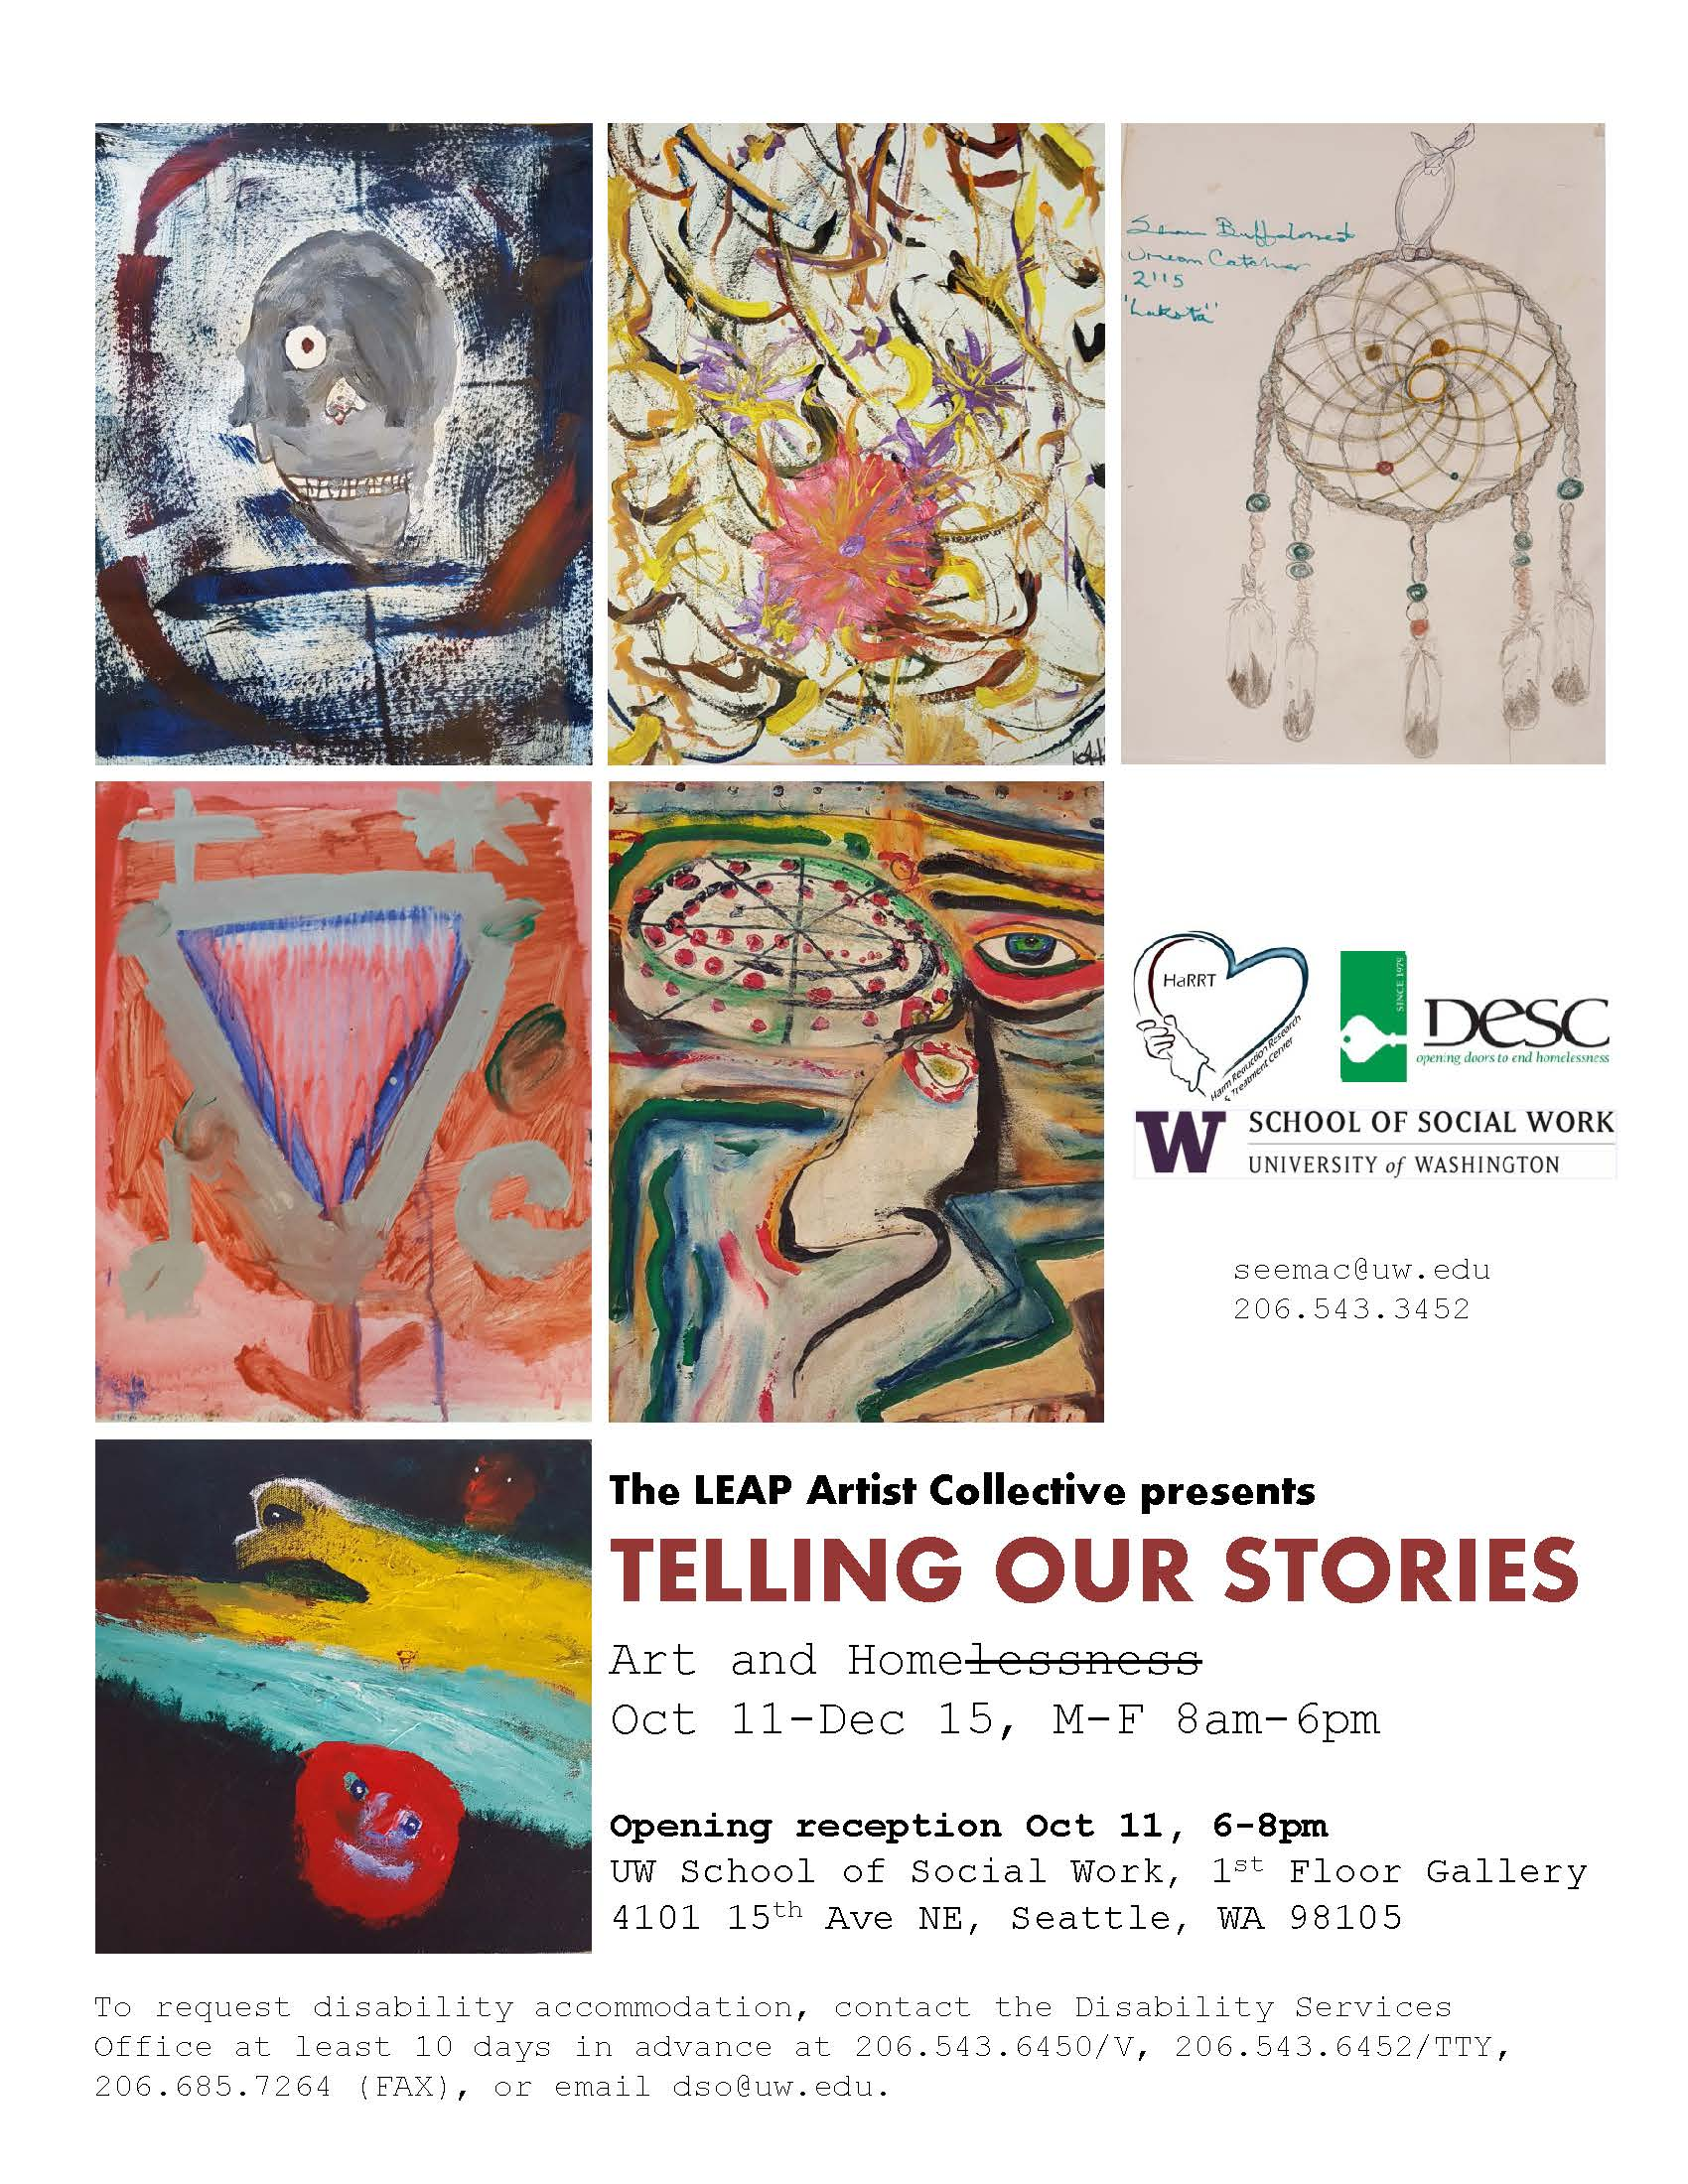 The Telling Our Stories exhibit is open to the public 10/11